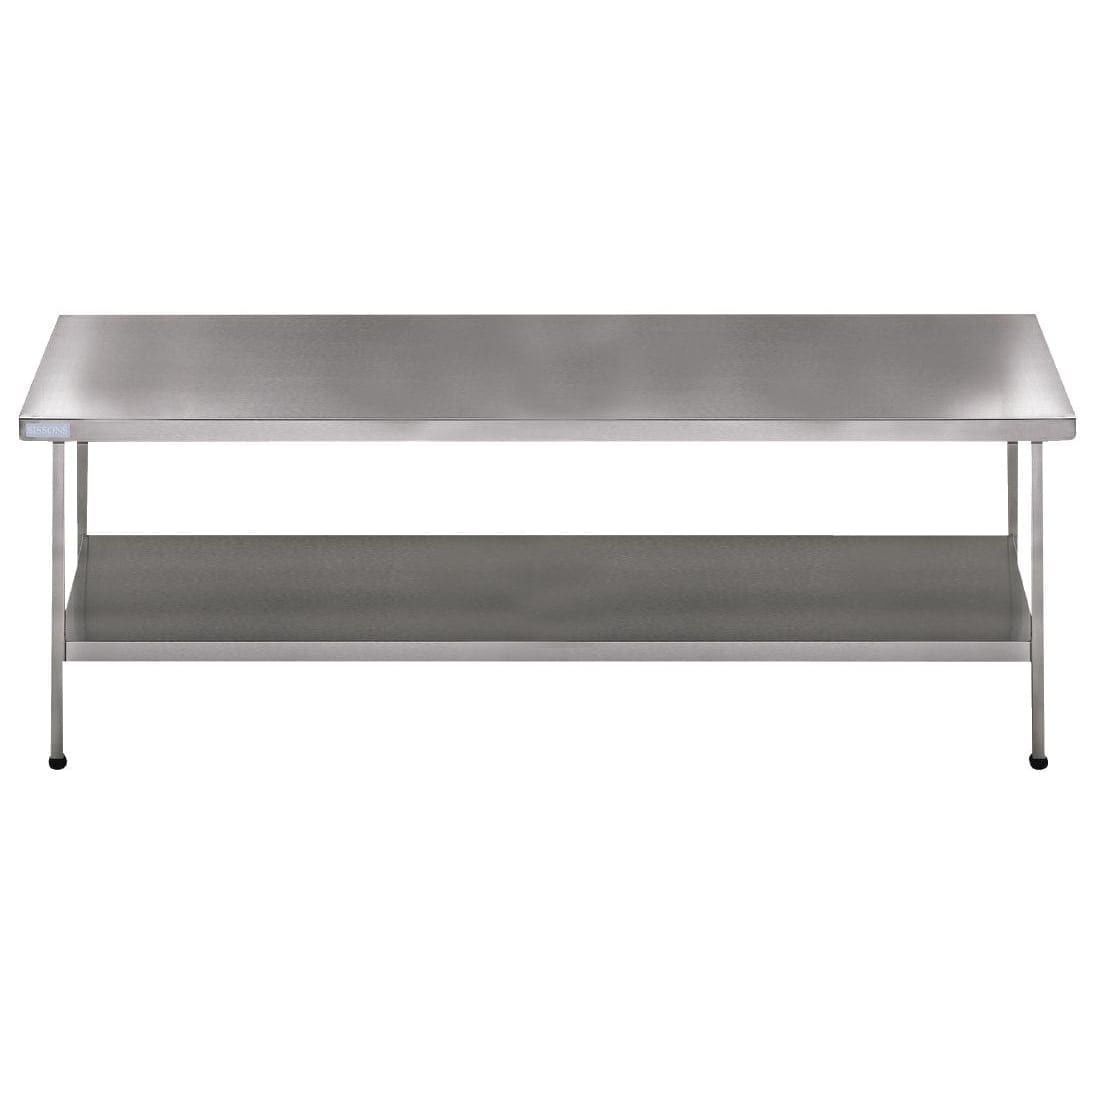 Sissons Centre Table St/St - 1500x650mm F/Assembled (Direct)-0